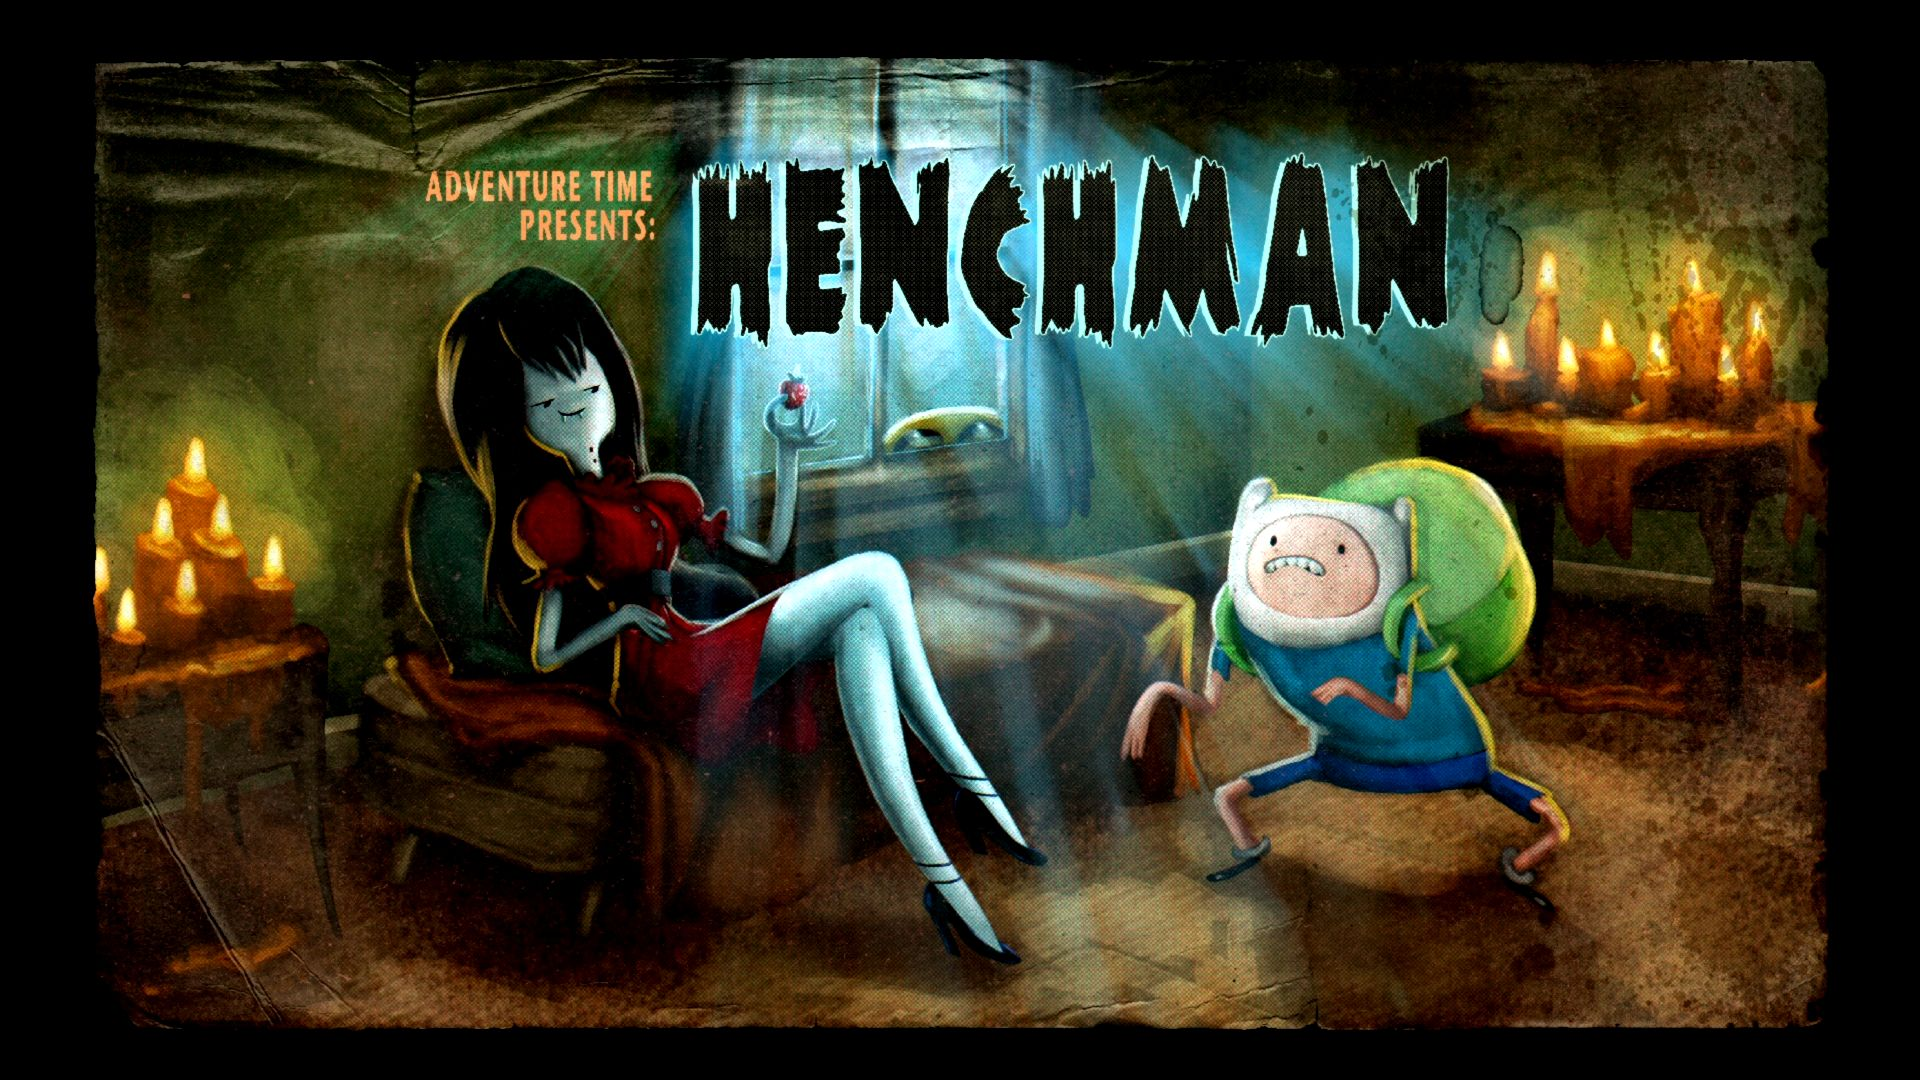 File:Titlecard S1E22 henchman.jpg